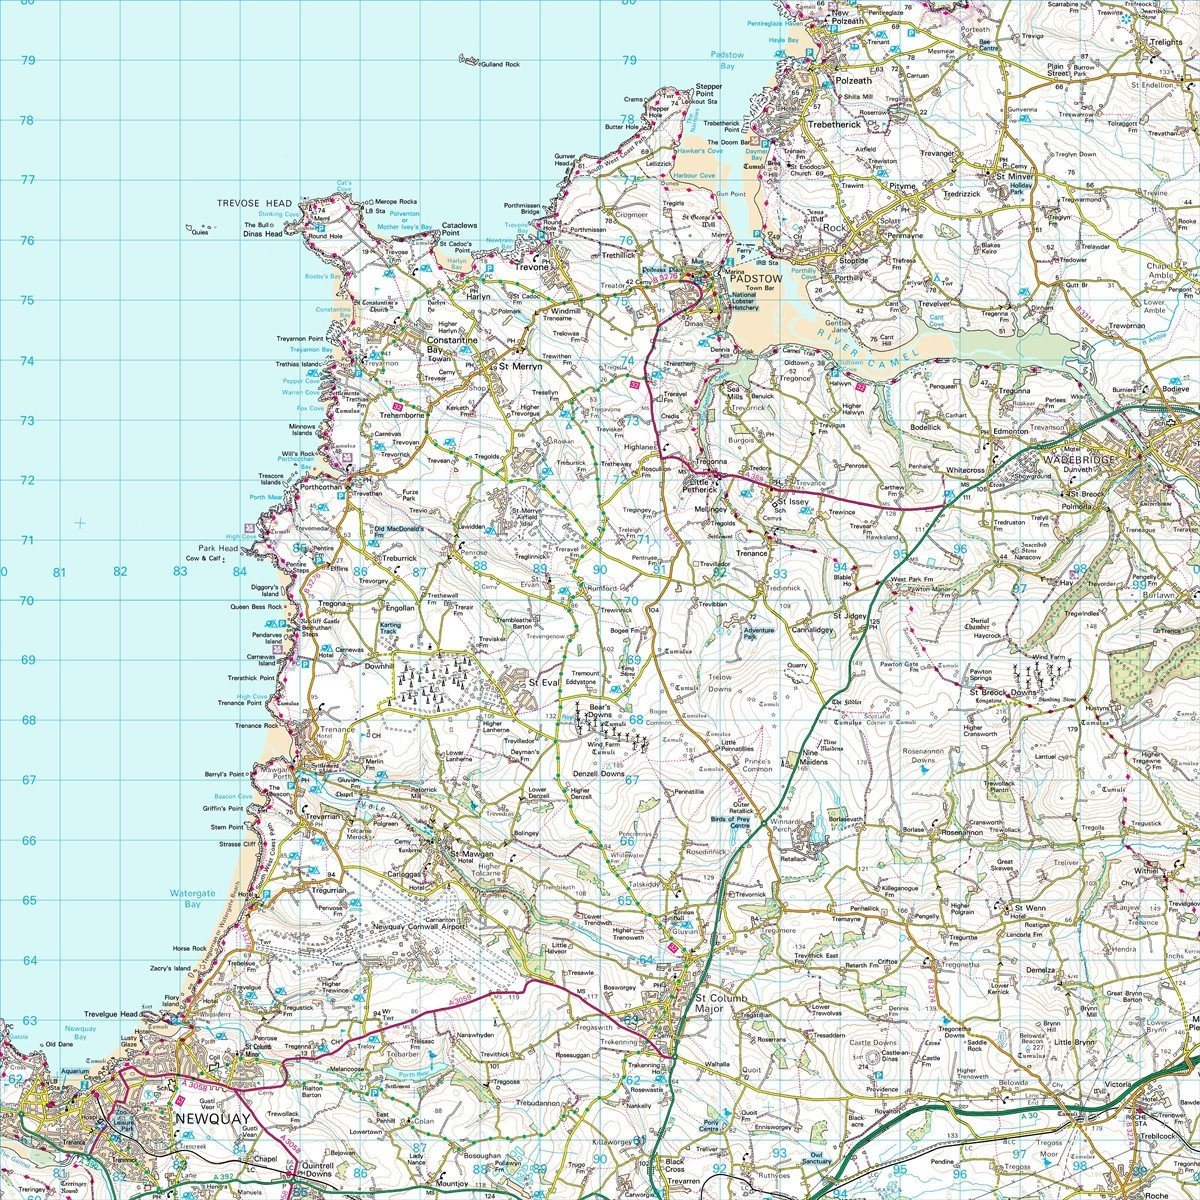 Map Gift - Ordnance Survey Landranger Map Centred On Your Home